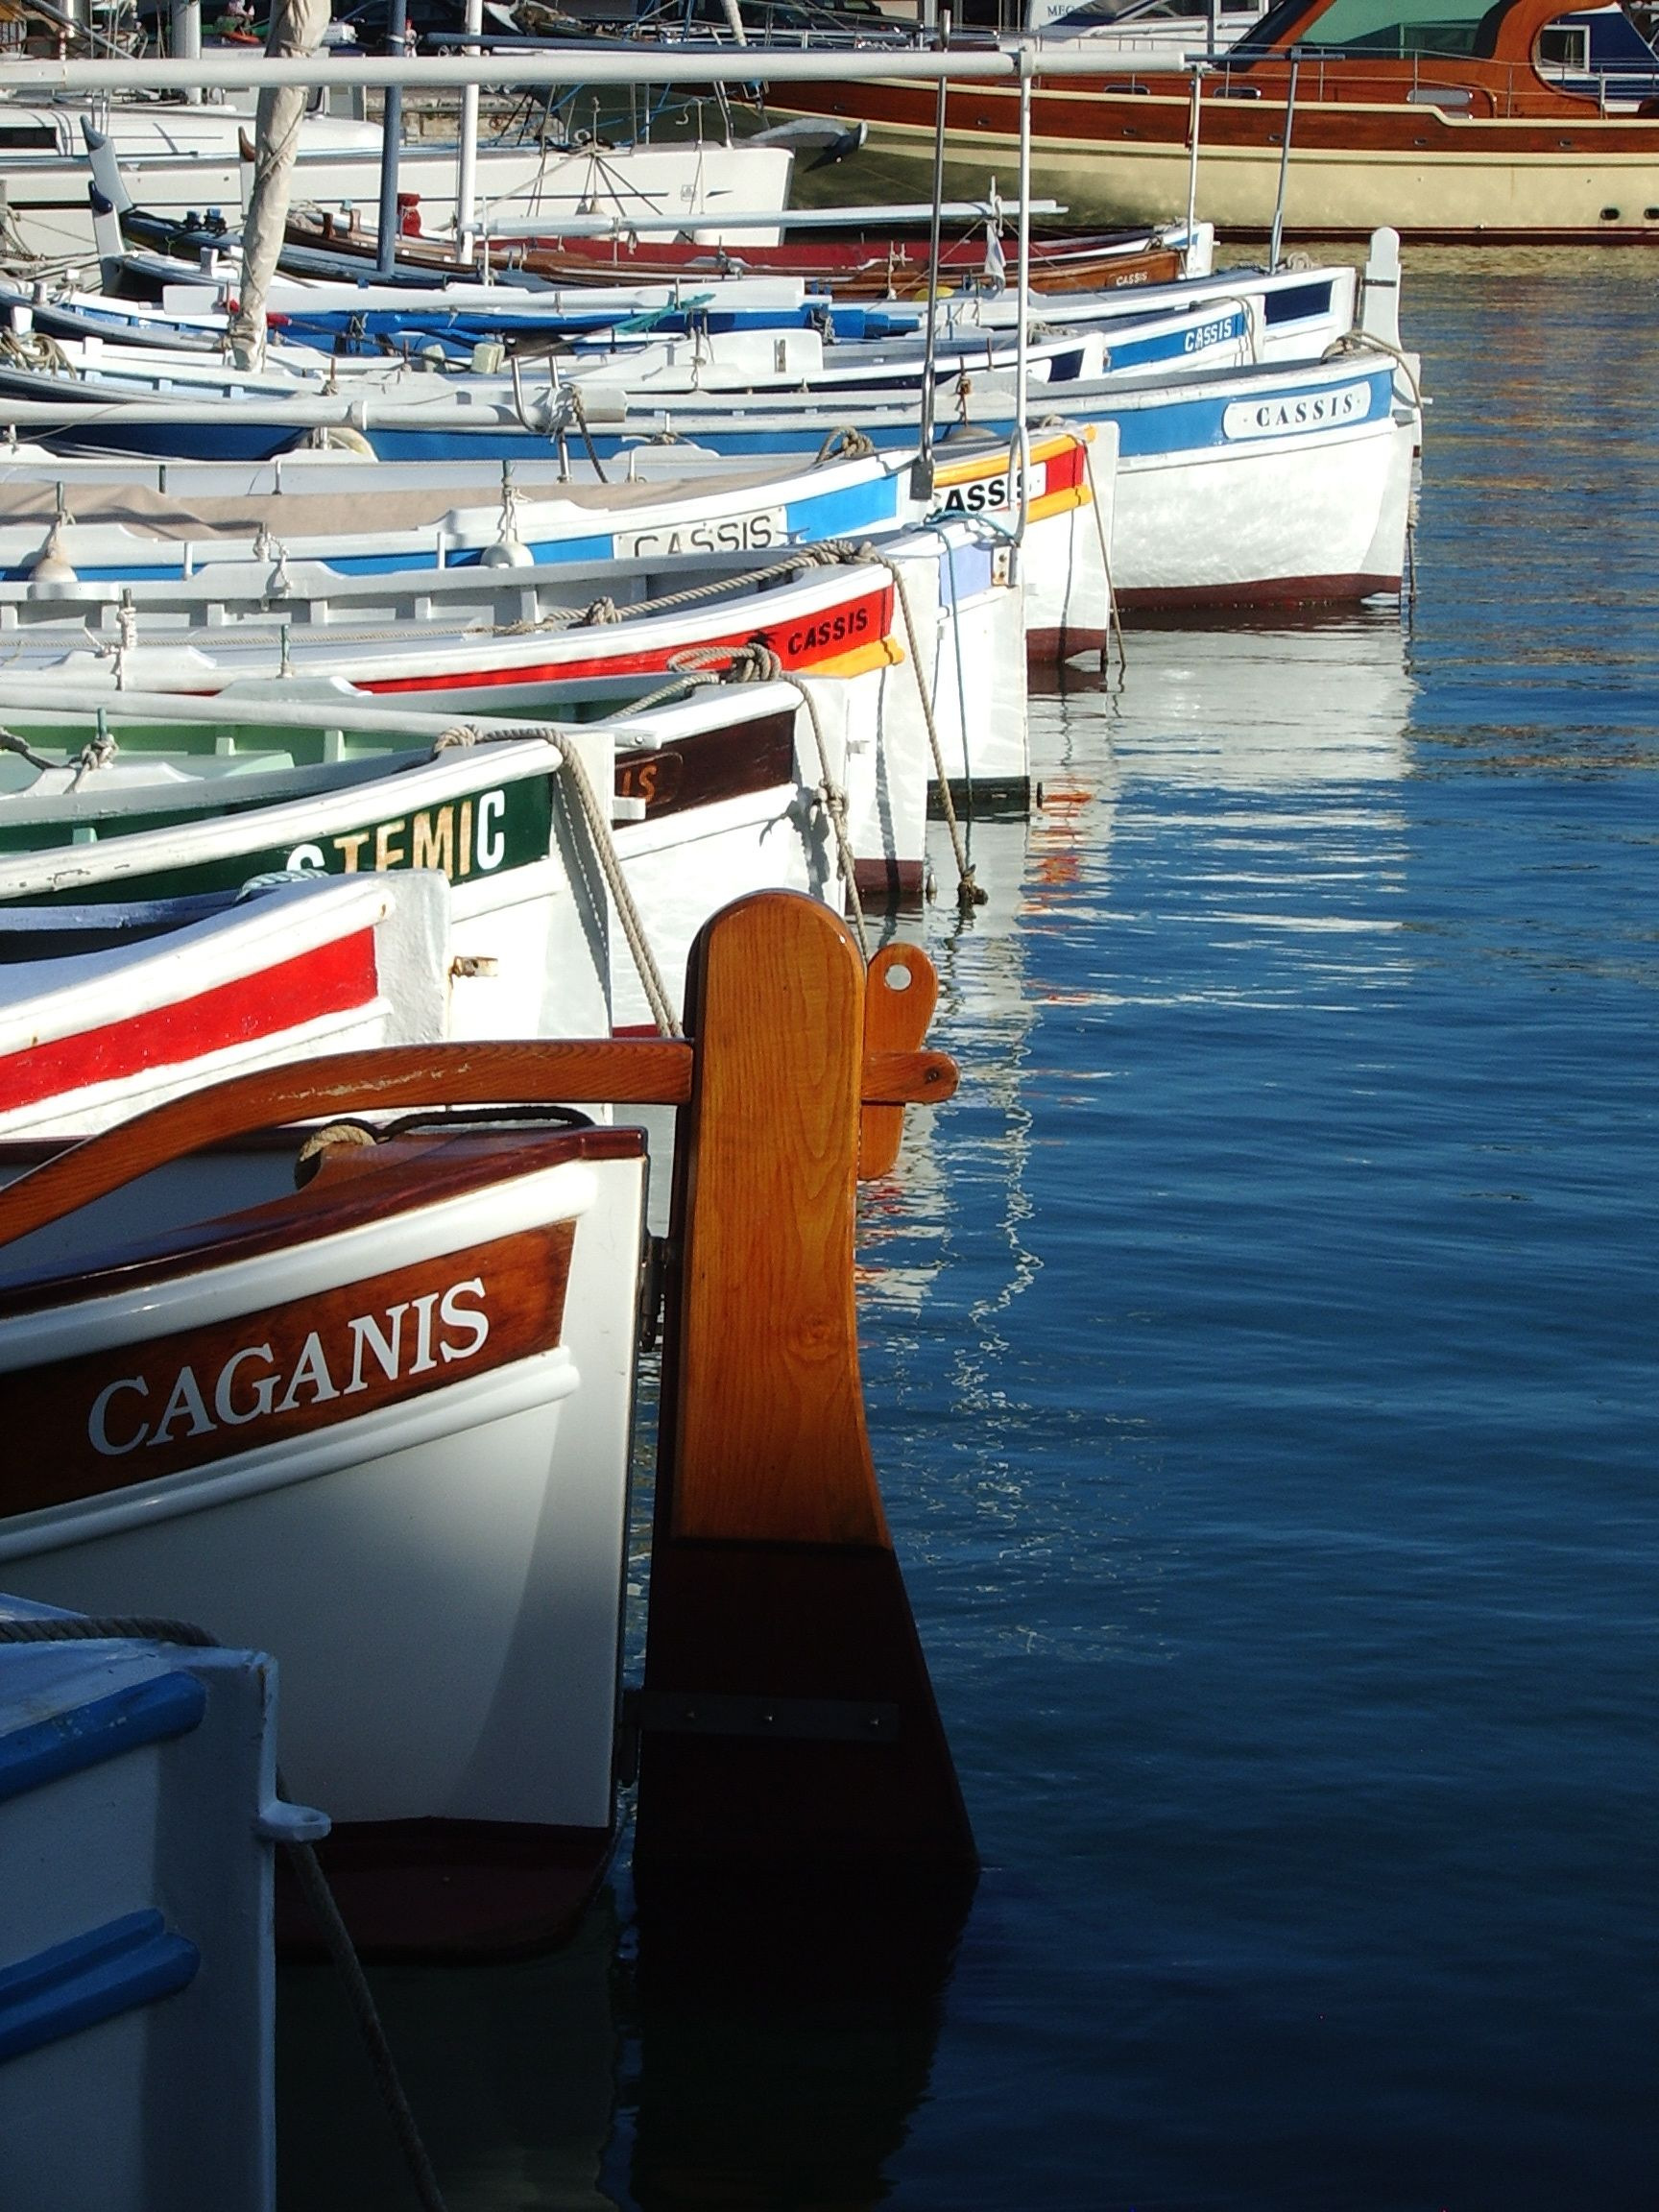 Location Canoe Cassis Cassis France I Love Photography Pinterest France Travel